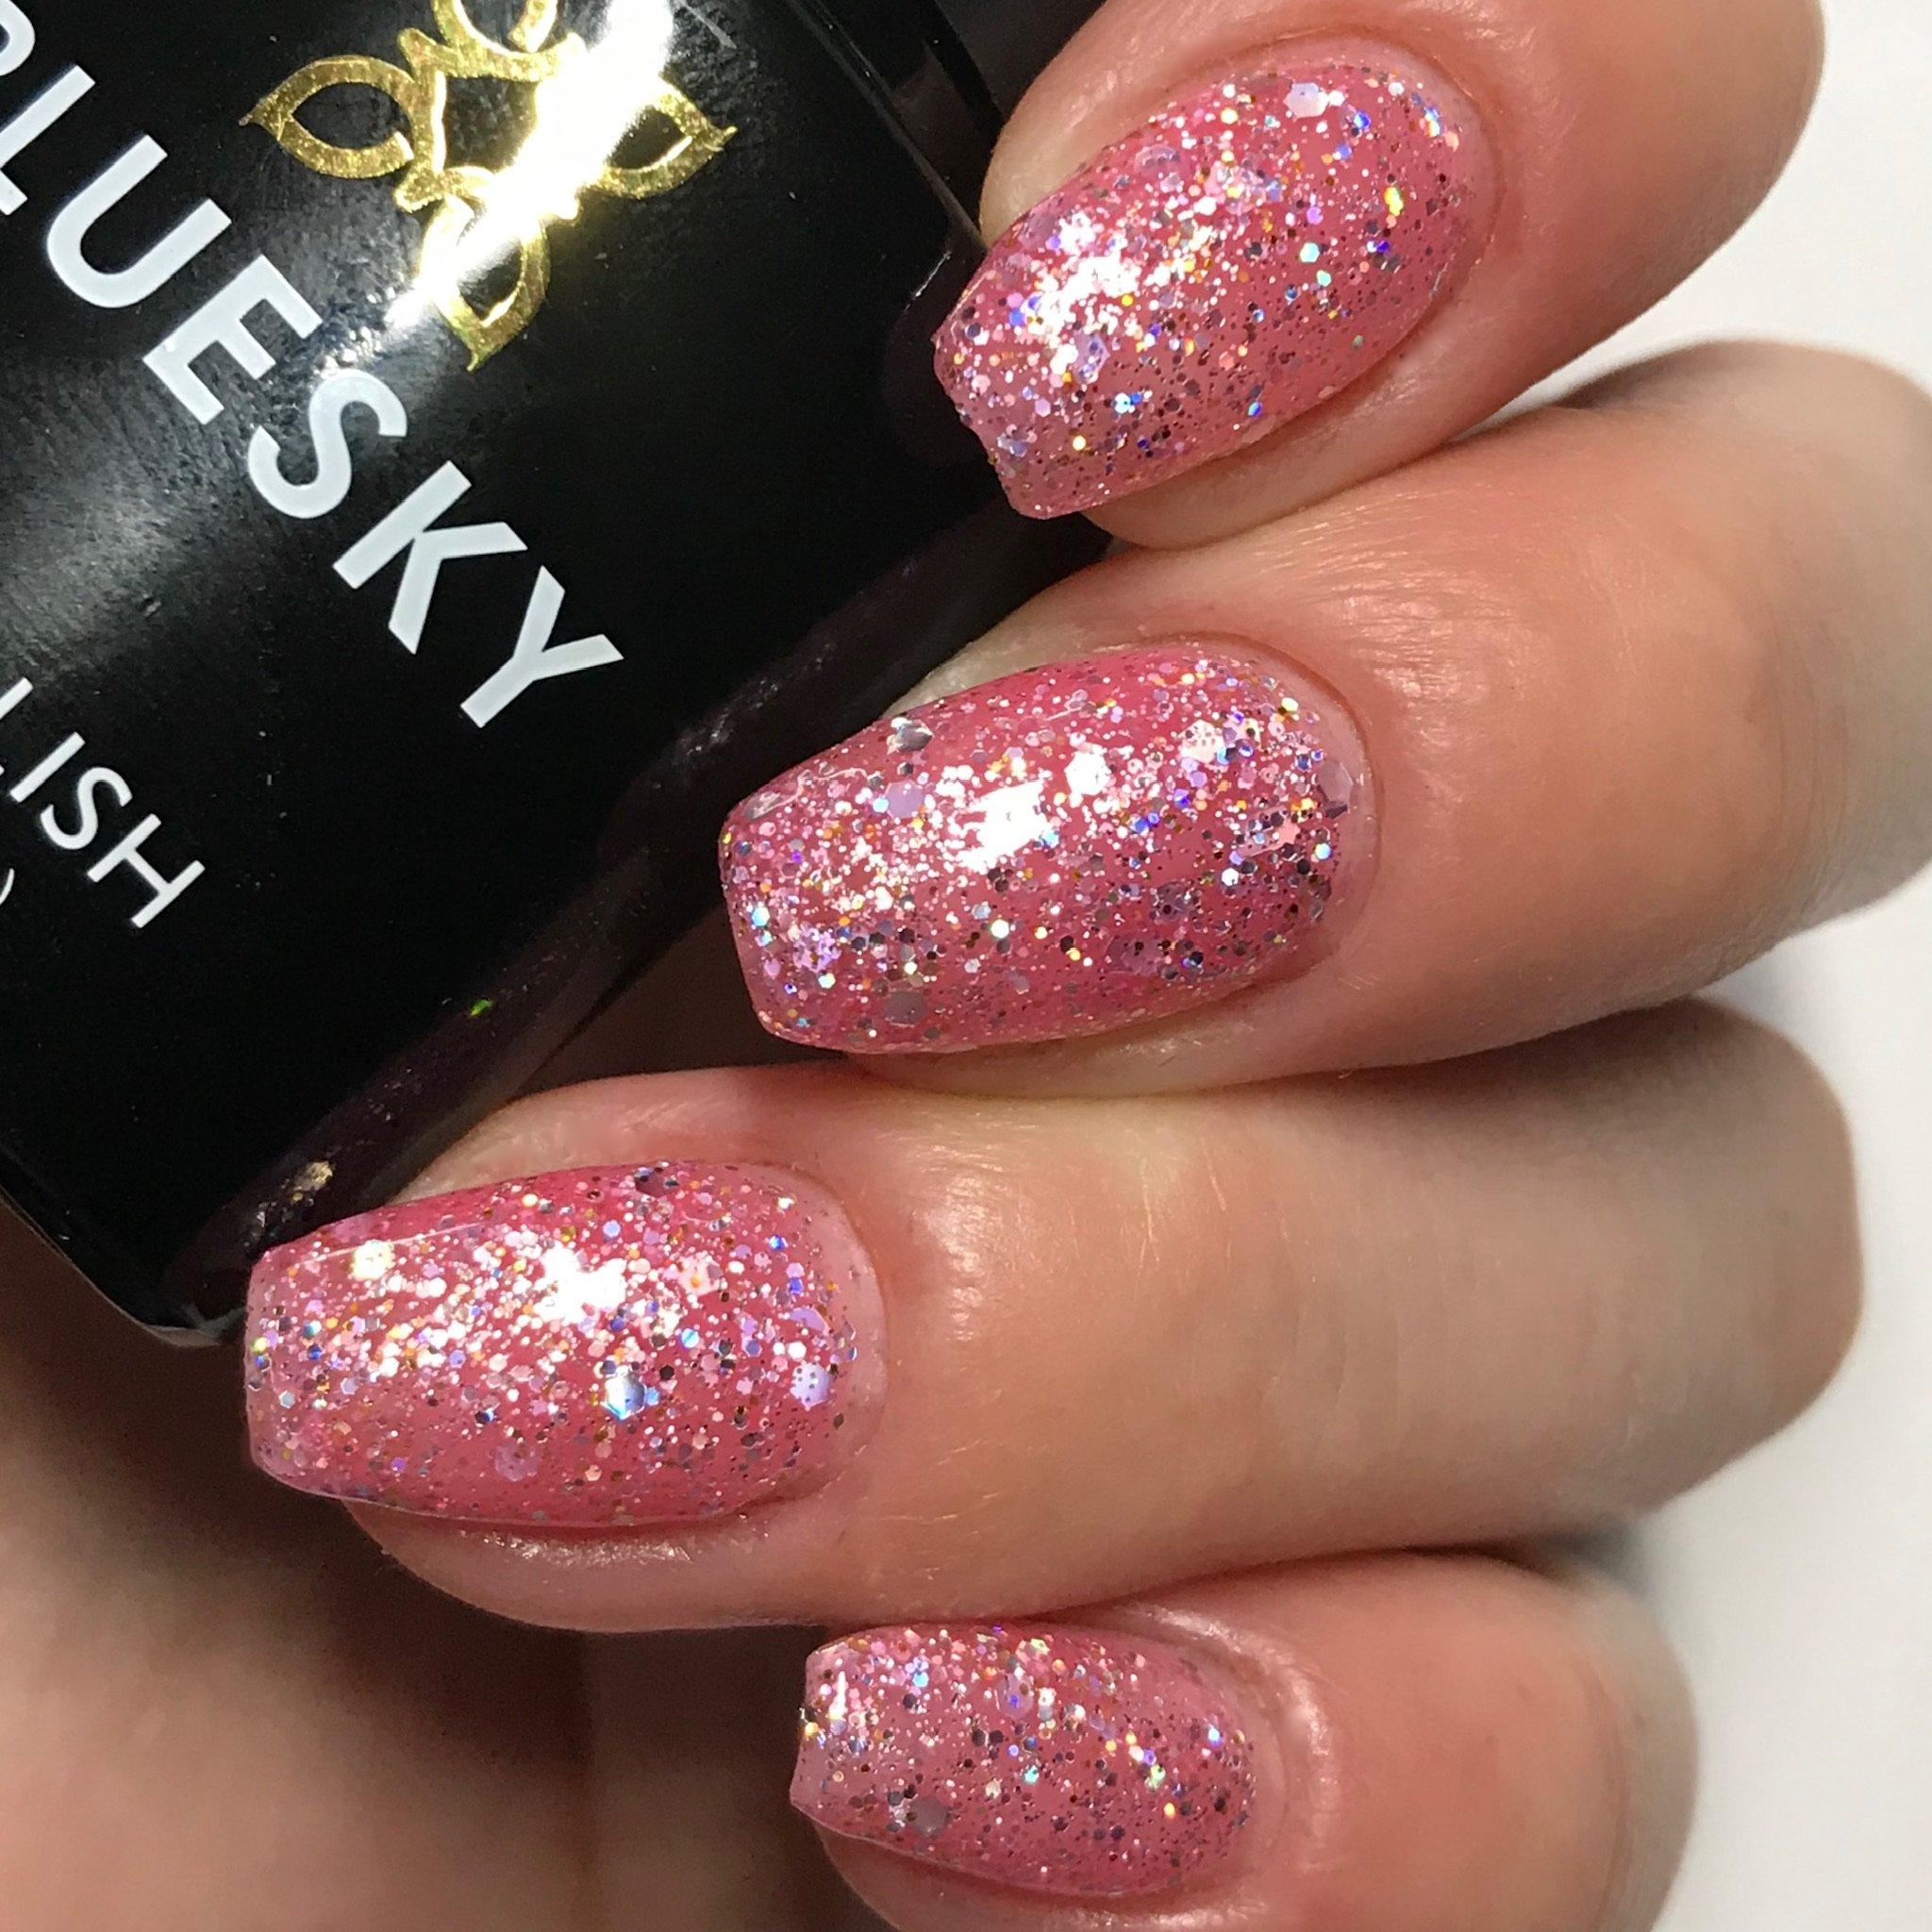 Bluesky Glitter BLZ 44 UV/LED Soak Off Gel Nail Polish 10ml Free Postage - Bluesky Nail Gel Polish